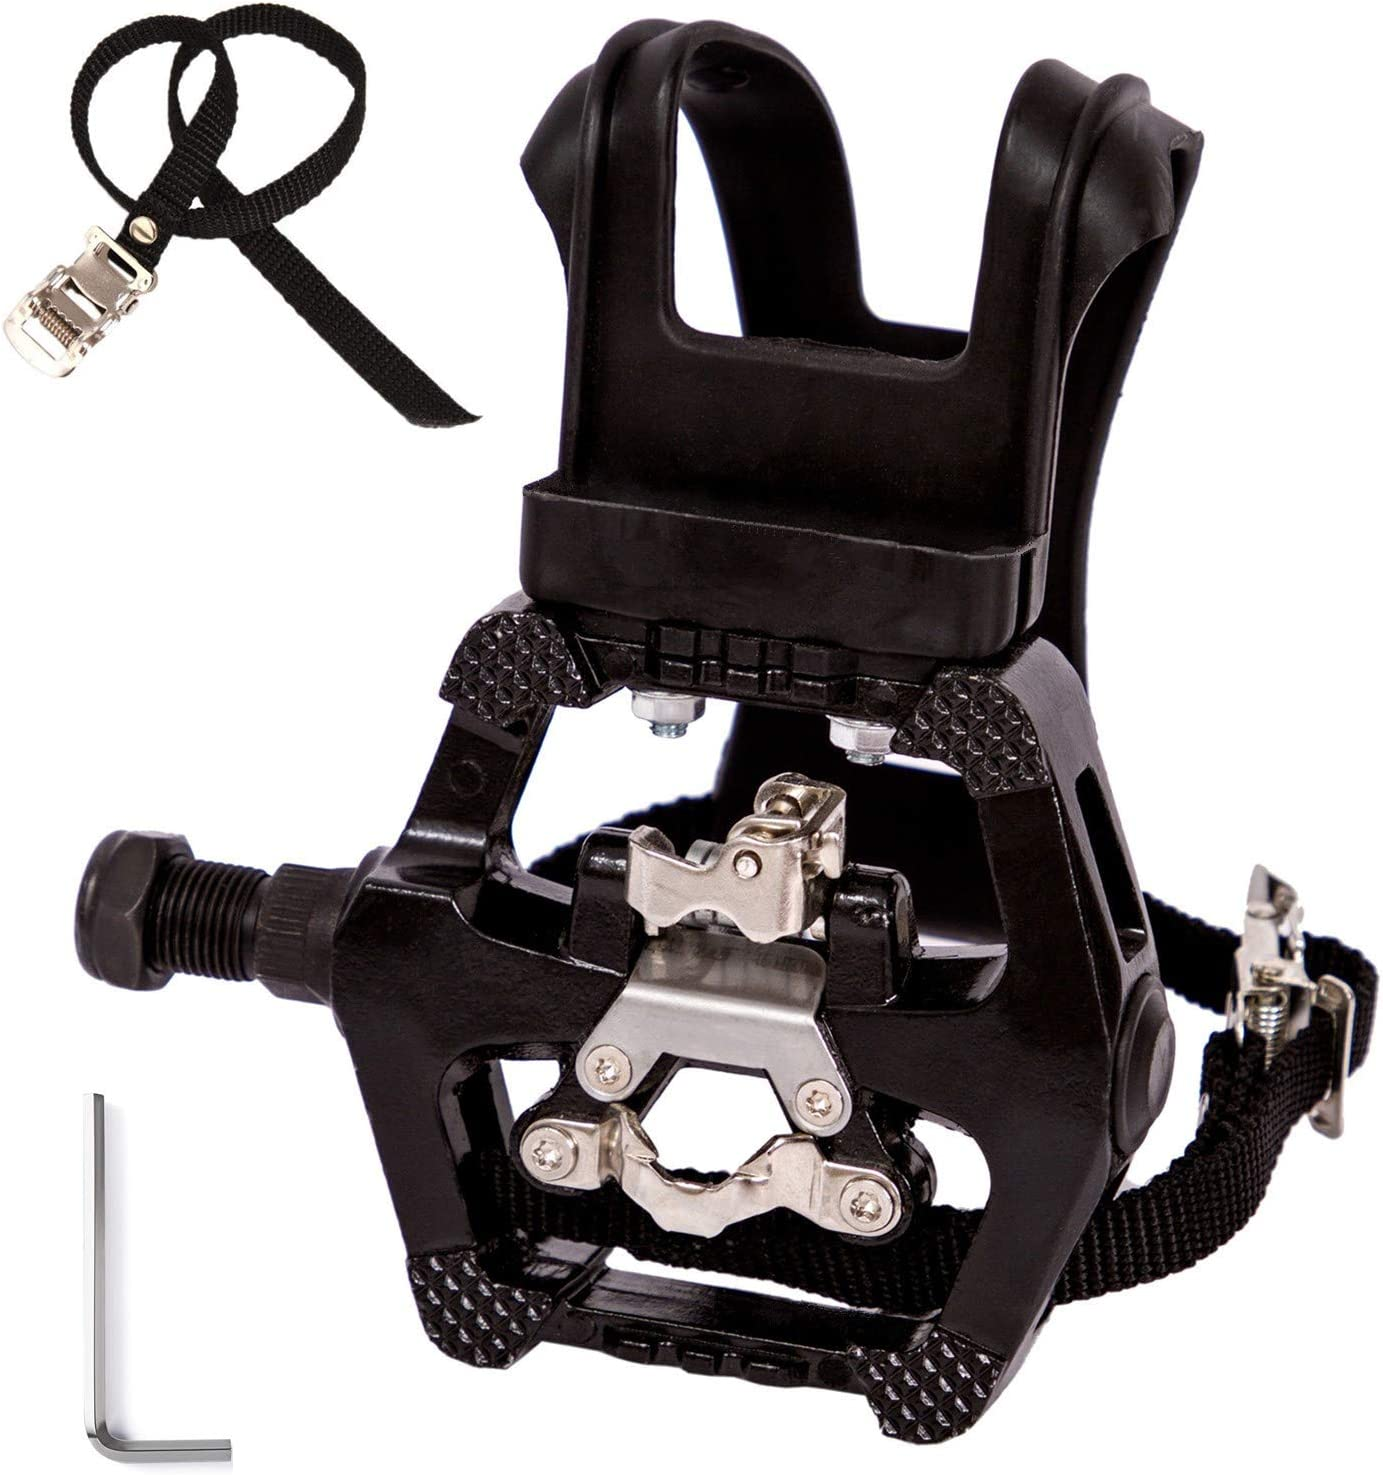 Details about  /1pair Cycling MTB Road Bike Pedal Toe Clip Strap Belt Bicycle Pedal Shoe Harness